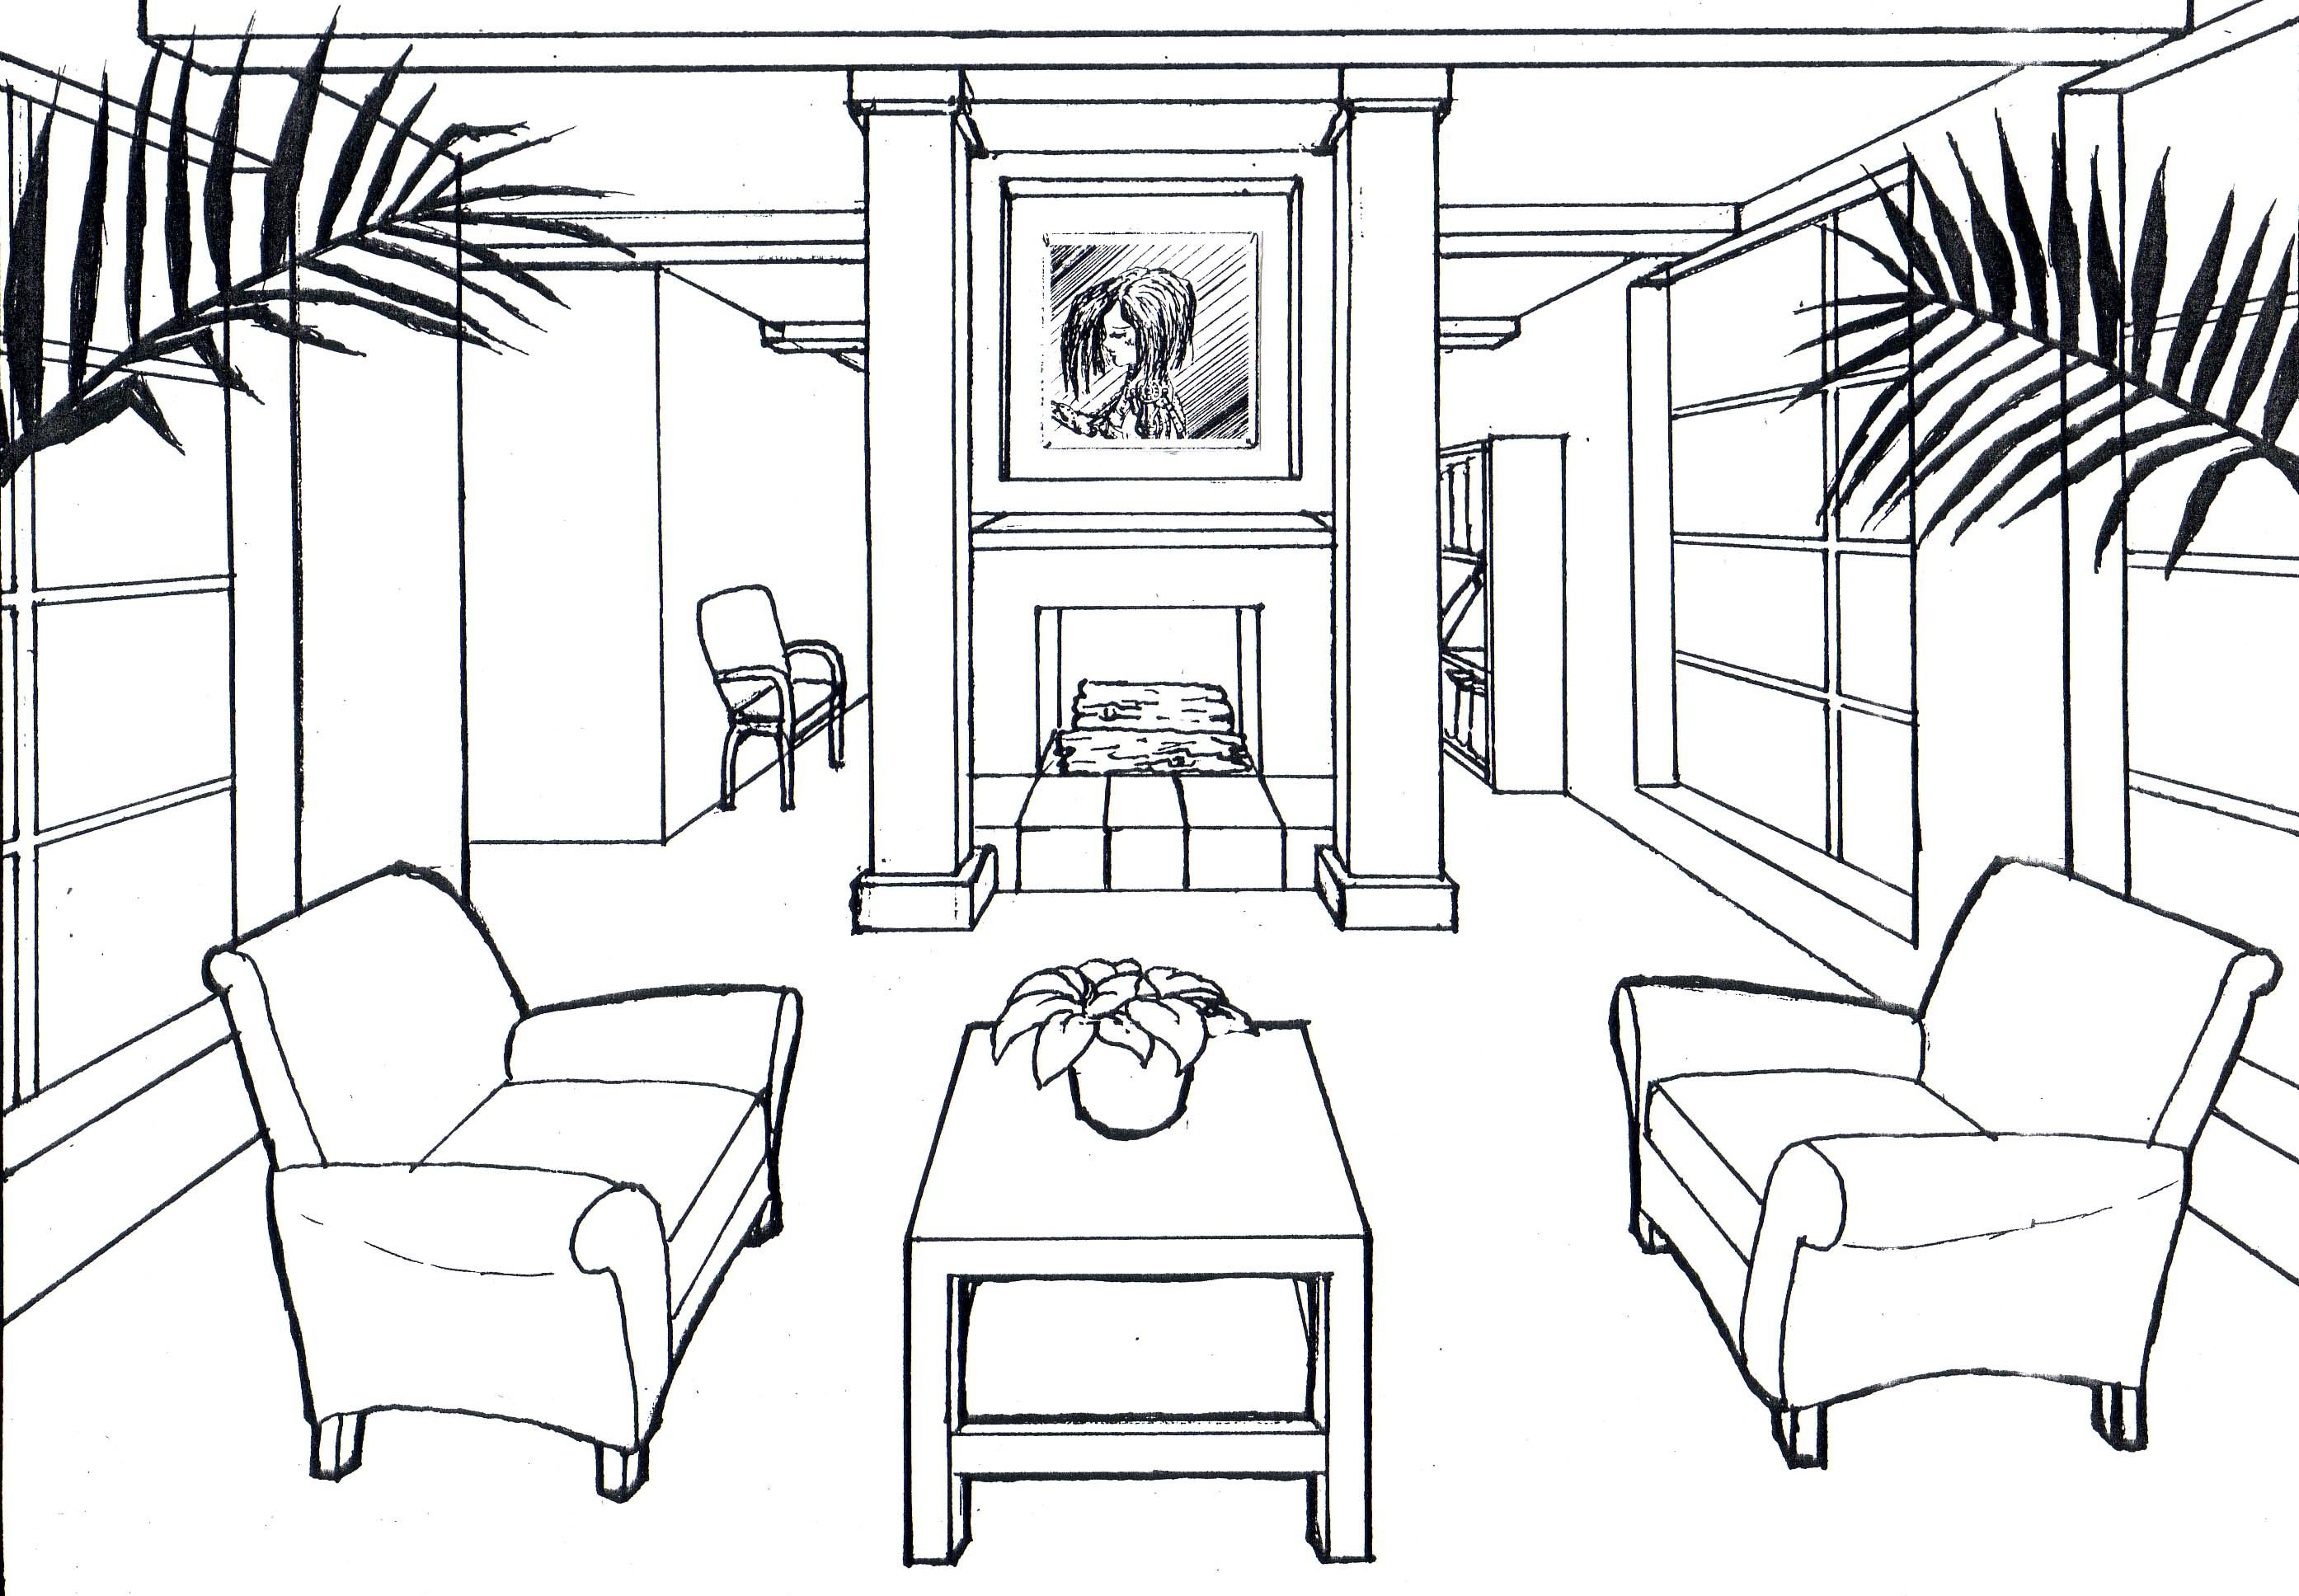 Google Image Result For Http Duffydey Com Images Drawings Perspective Drawings Onepoint Room Ink Jpg Perspective Room Perspective Drawing 1 Point Perspective